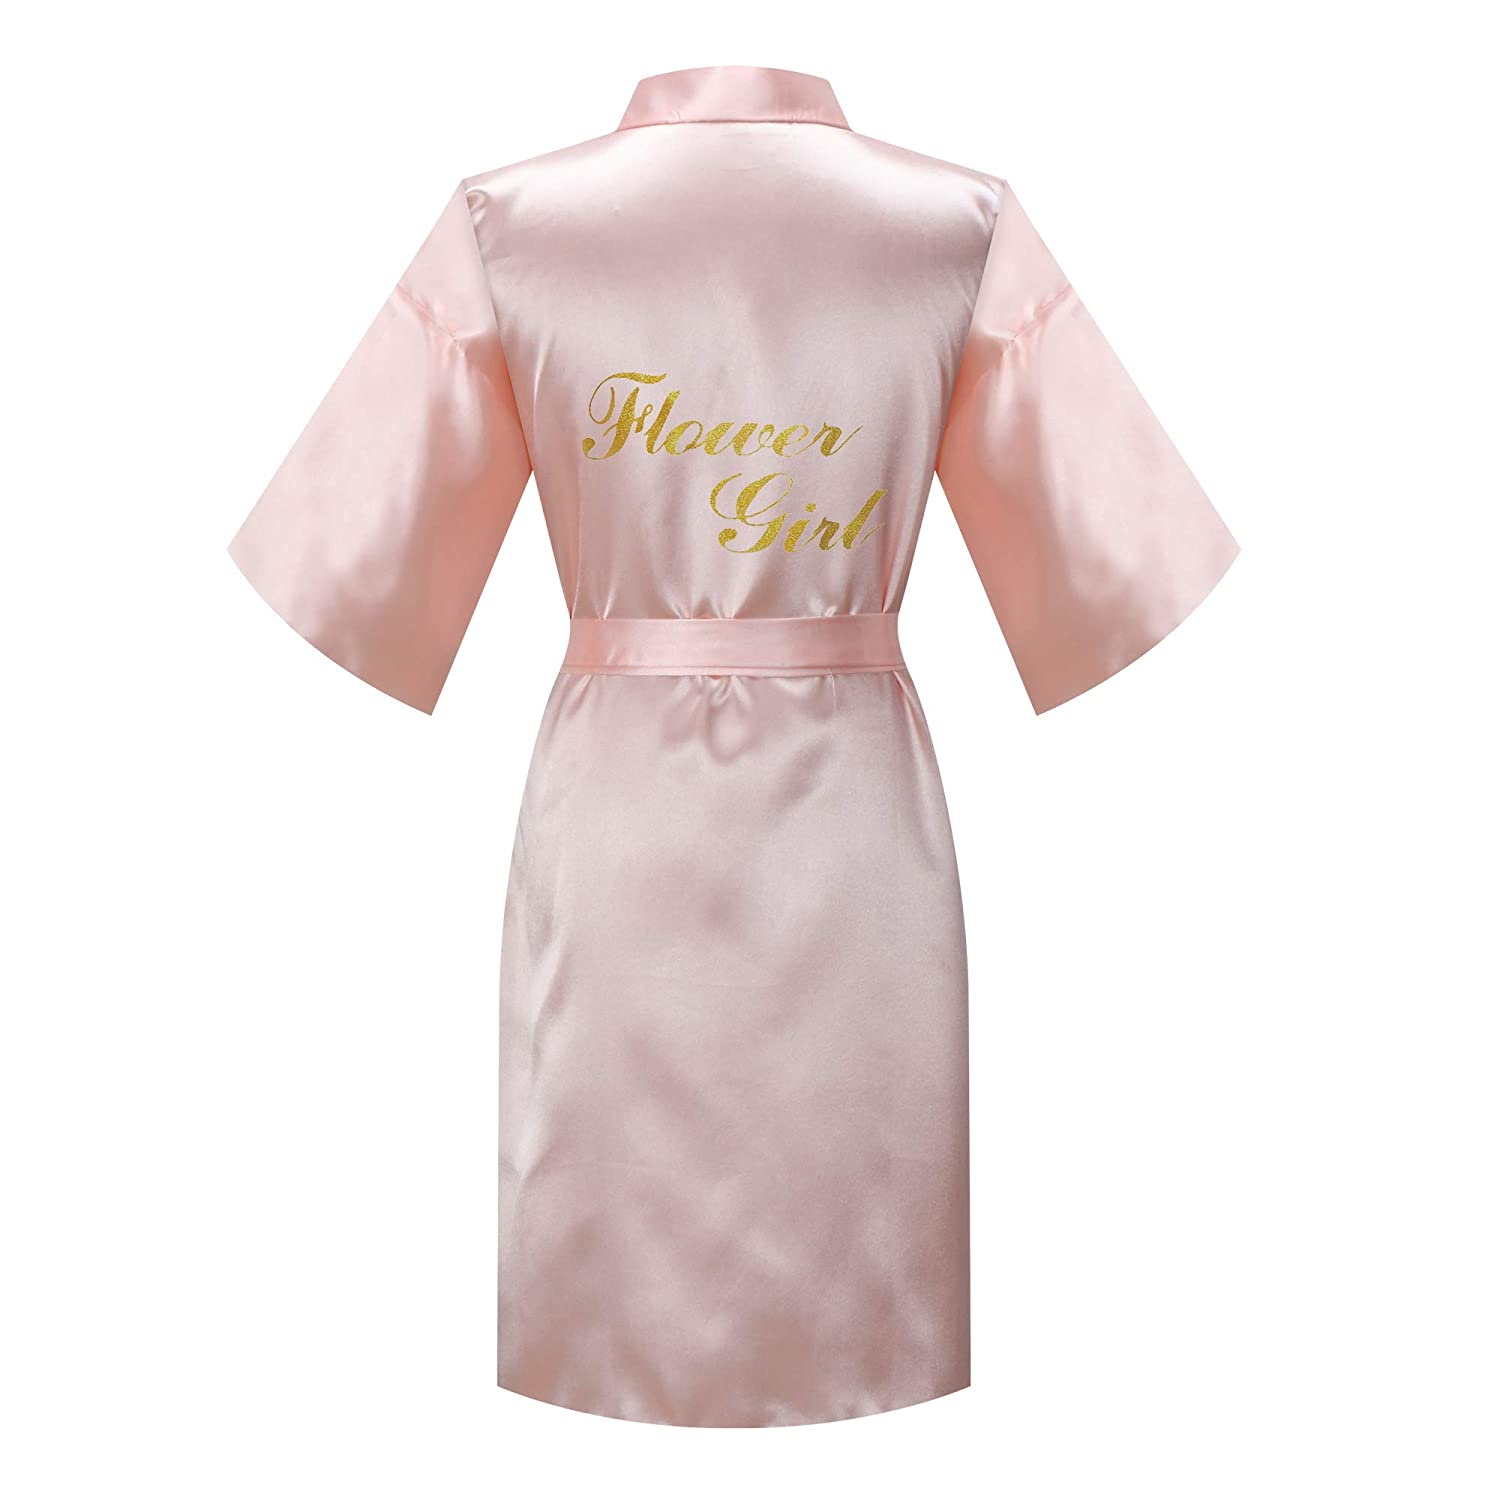 Short MORFORU Gold Glittering Flower Girl Silky Satin Kimono Robe Solid Color Kids Sleepwear for Wedding Spa Party